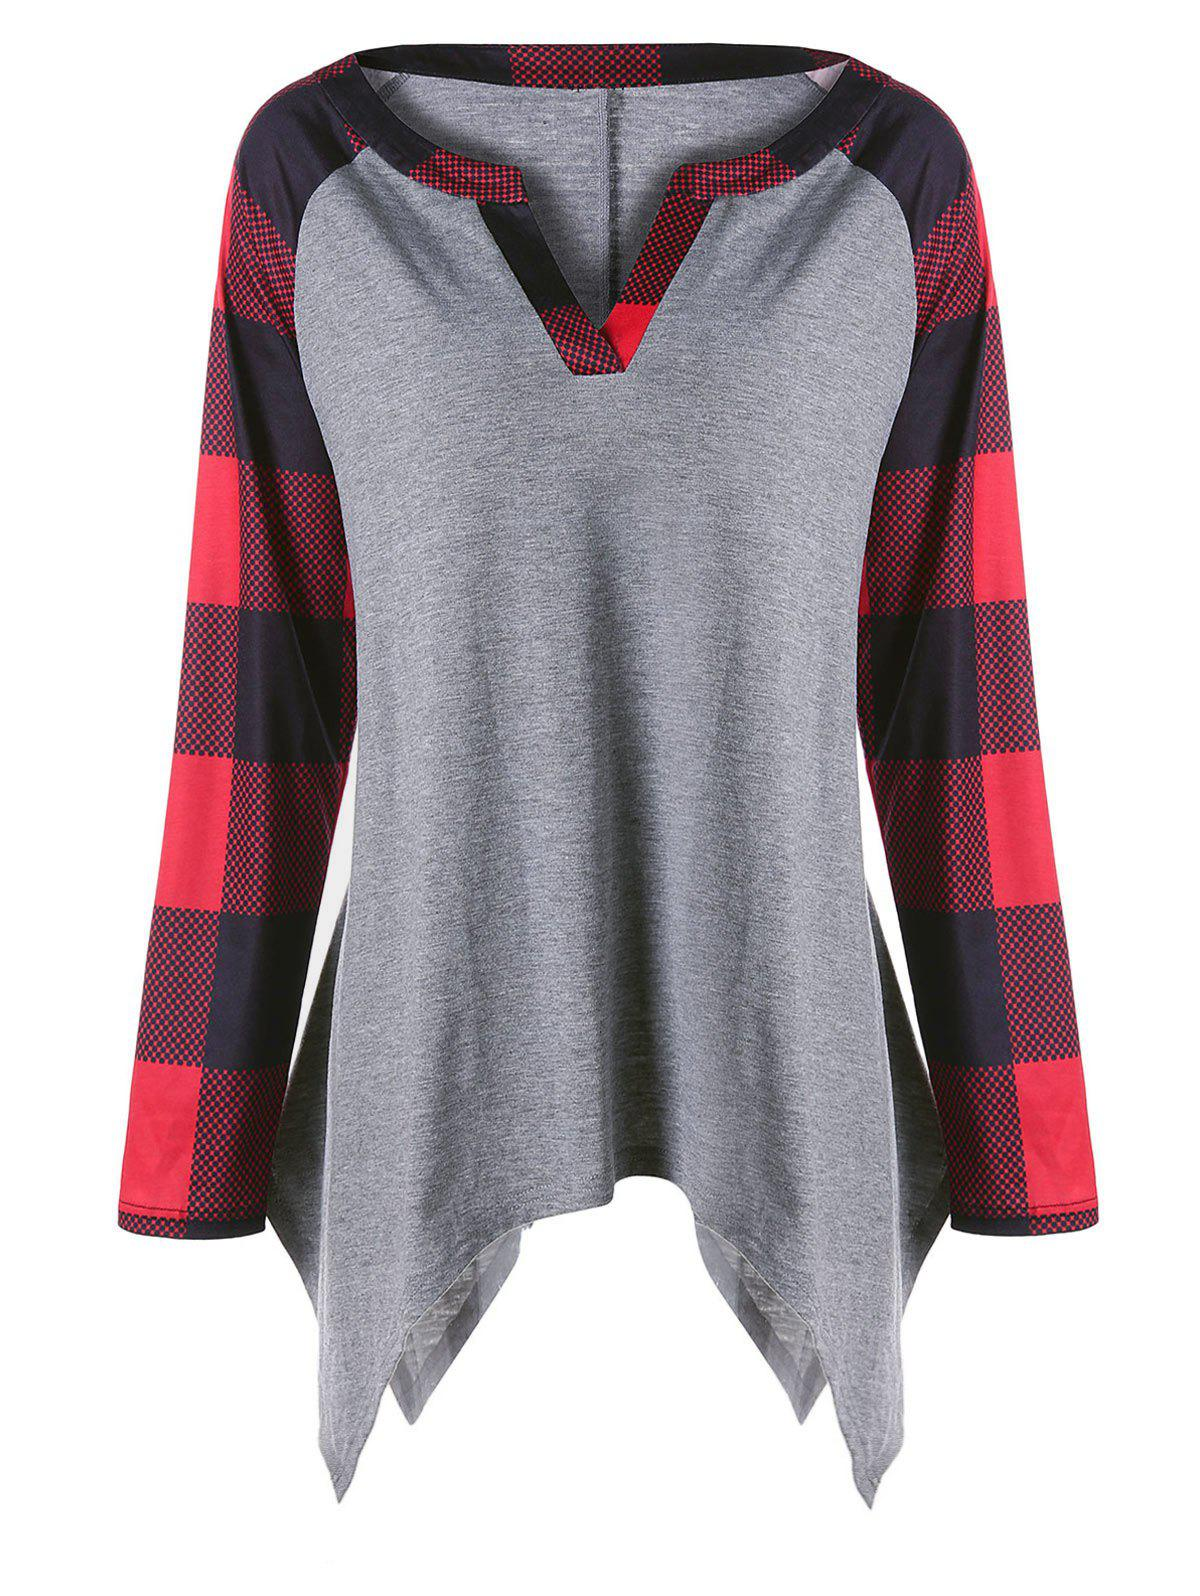 Plus Size Raglan Sleeves Asymmetric Plaid Panel T-shirt plus size raglan sleeves long plaid t shirt